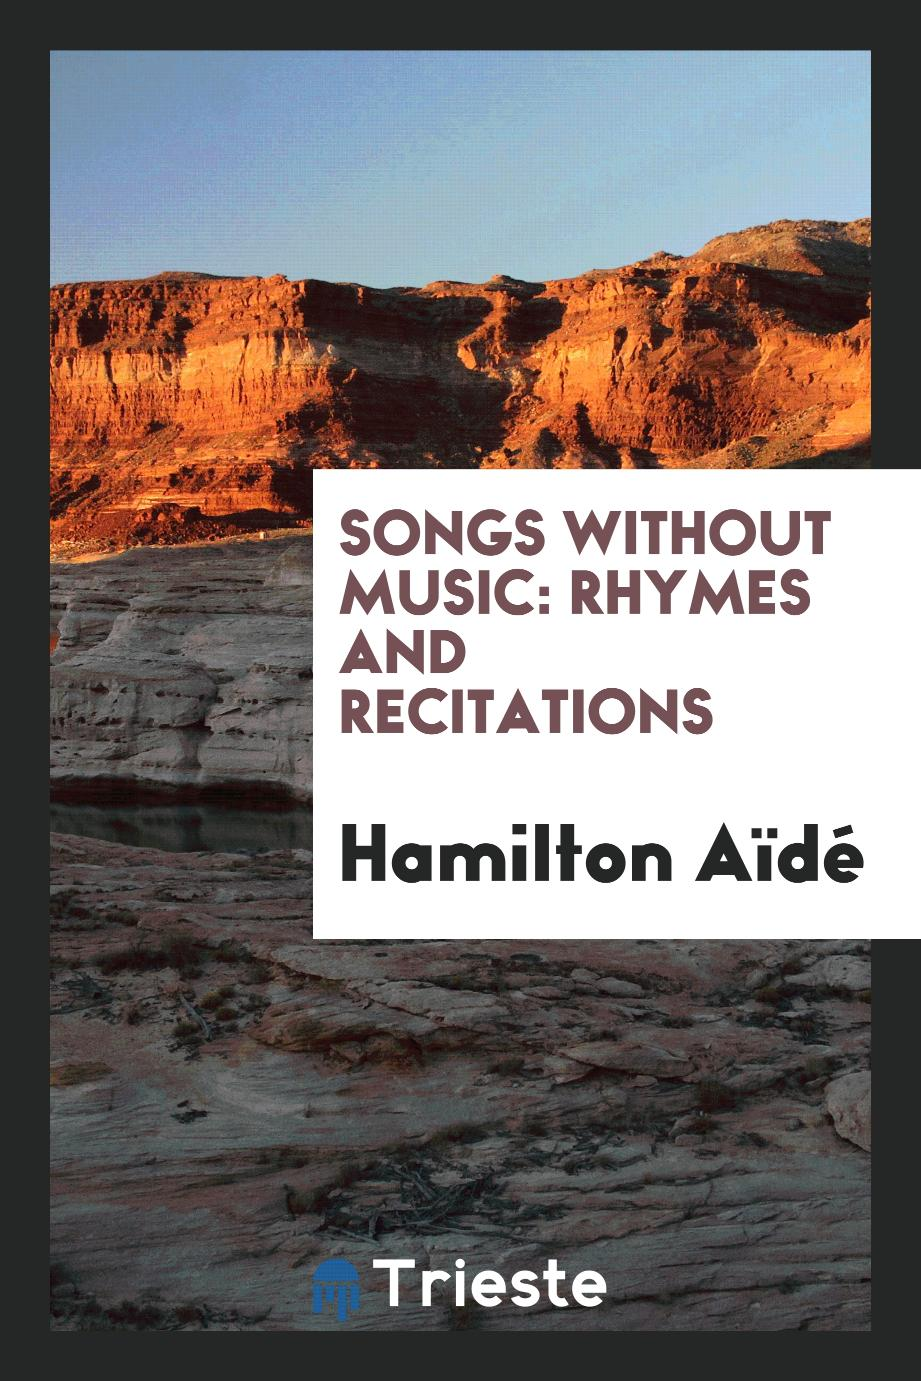 Songs Without Music: Rhymes and Recitations